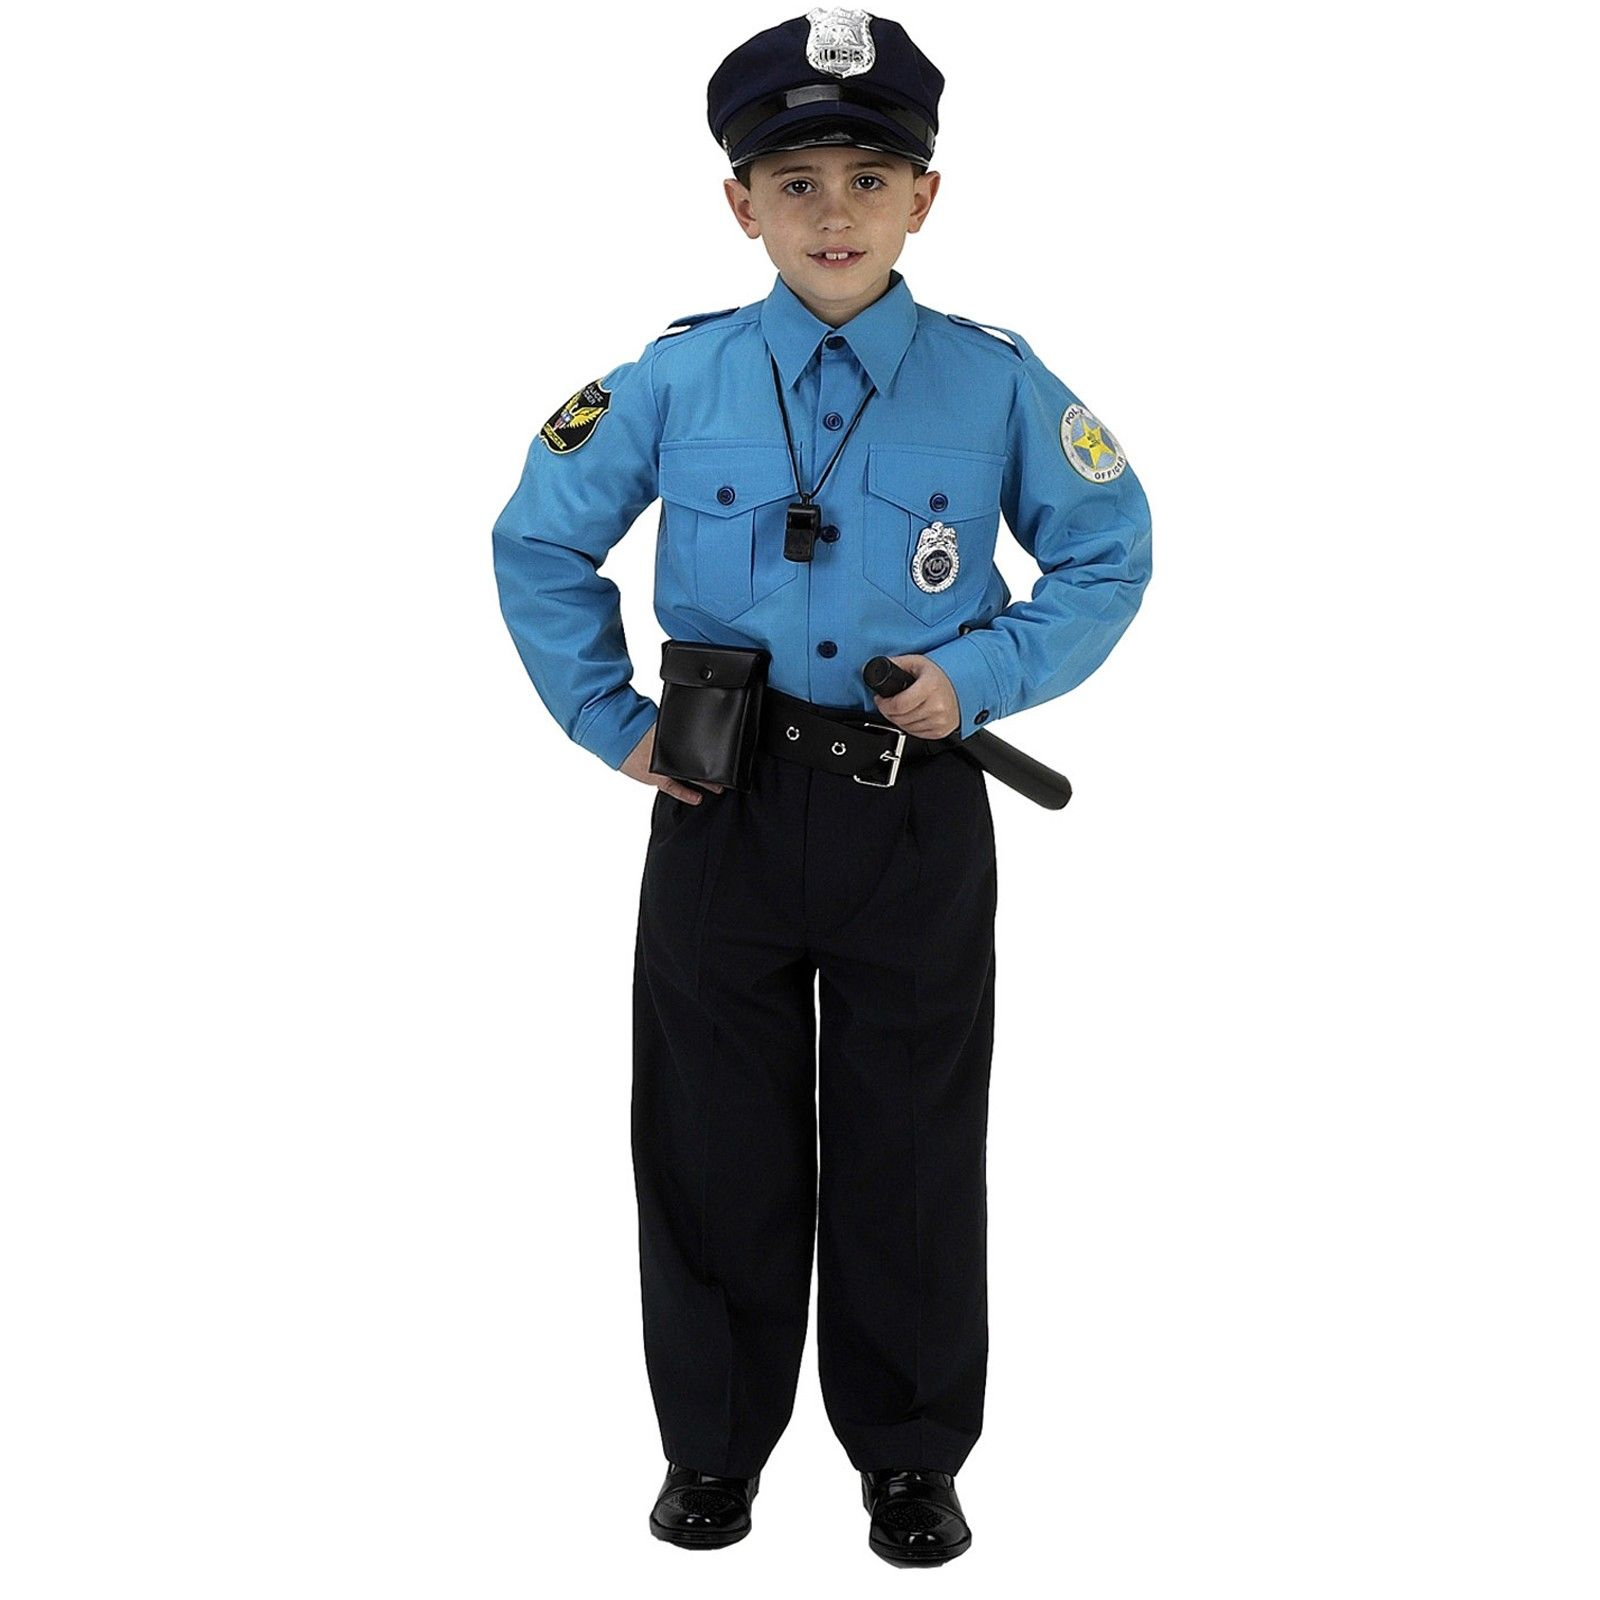 Costume clipart policeman. Jr police officer suit